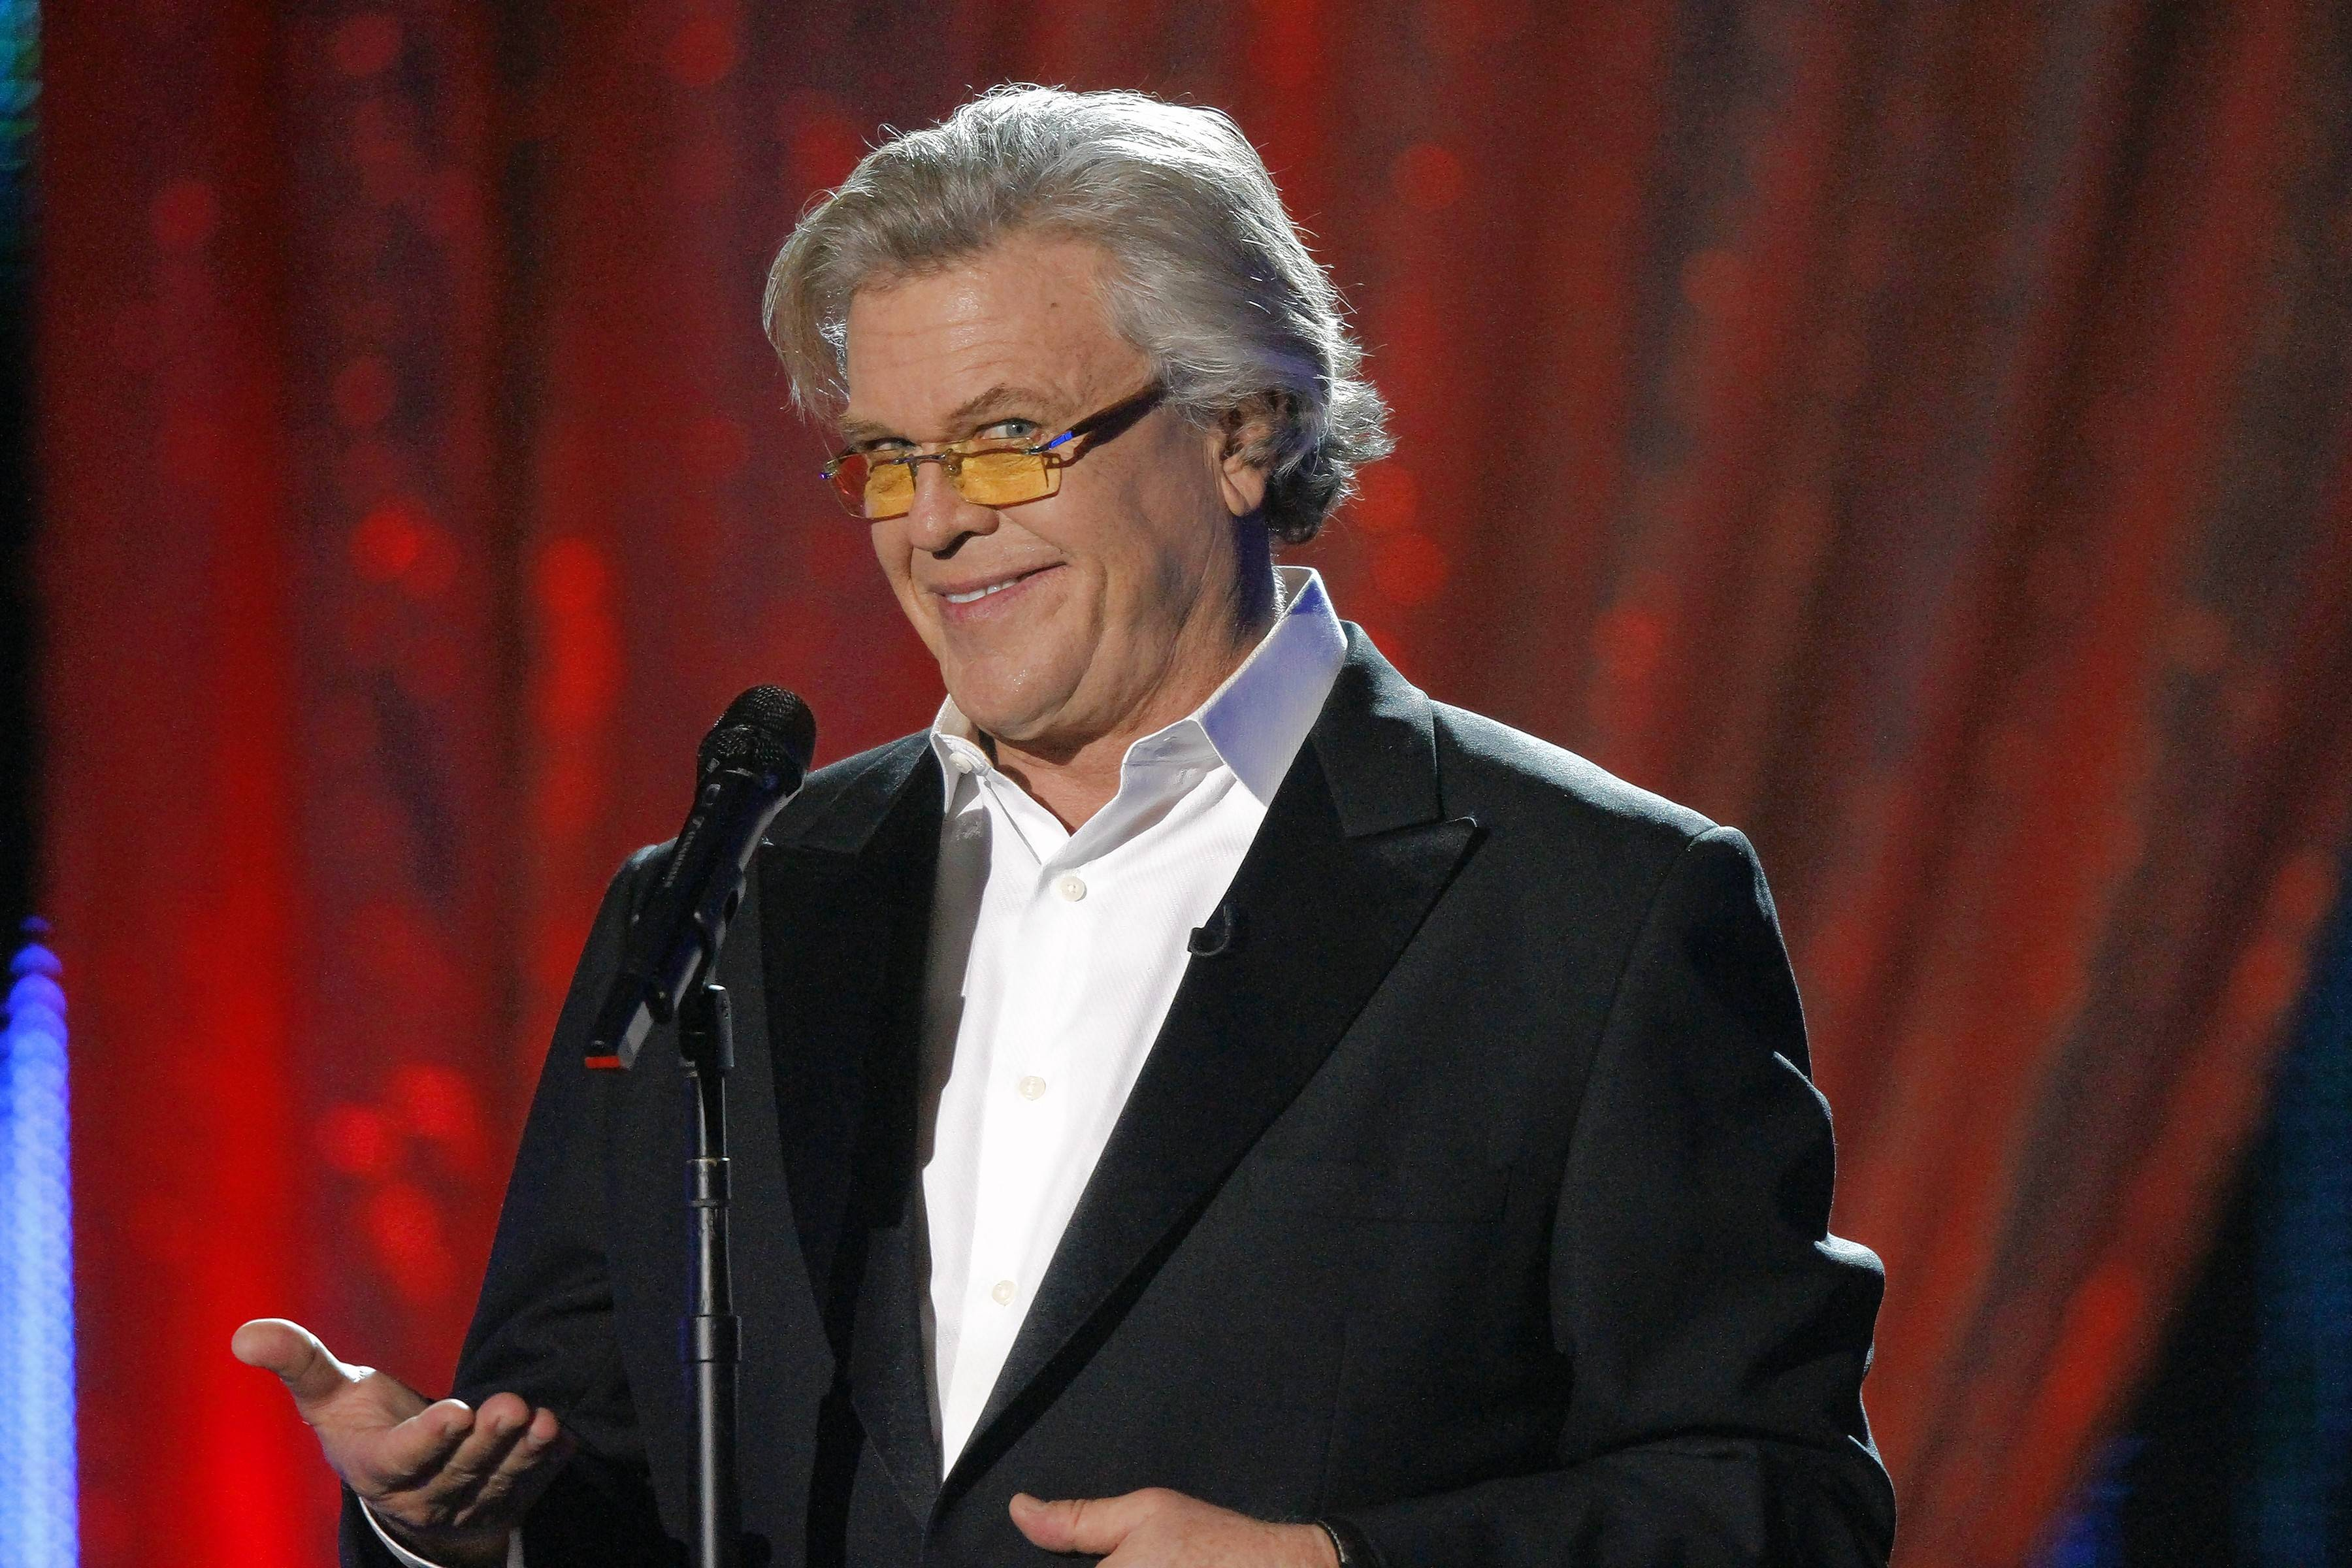 Comedian Ron White performs at the Genesee Theatre in Waukegan on Saturday, Feb. 3.